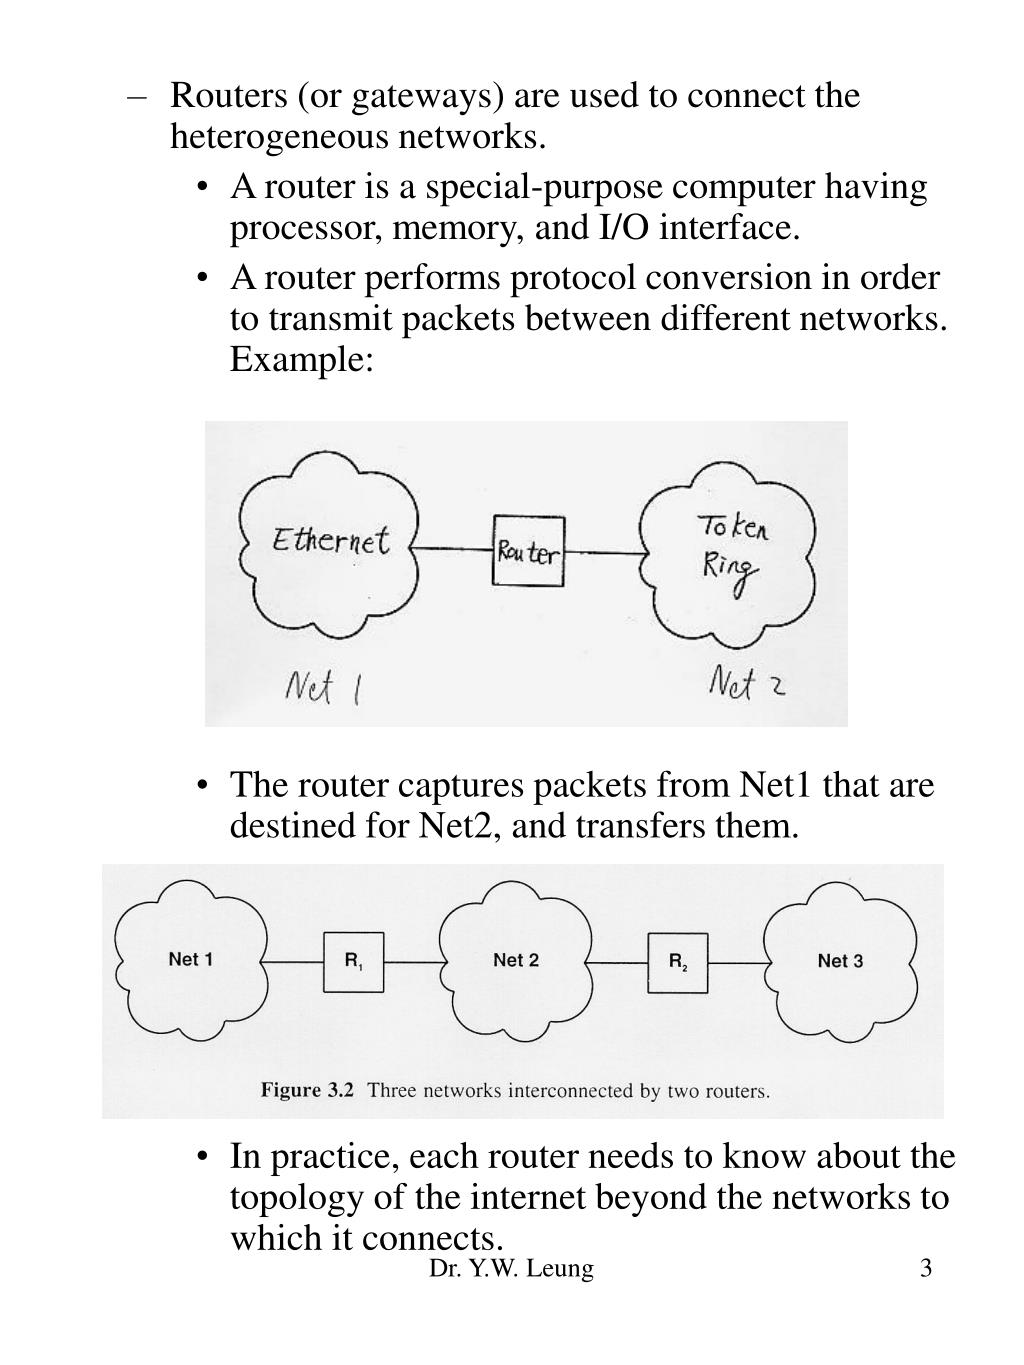 Routers (or gateways) are used to connect the heterogeneous networks.